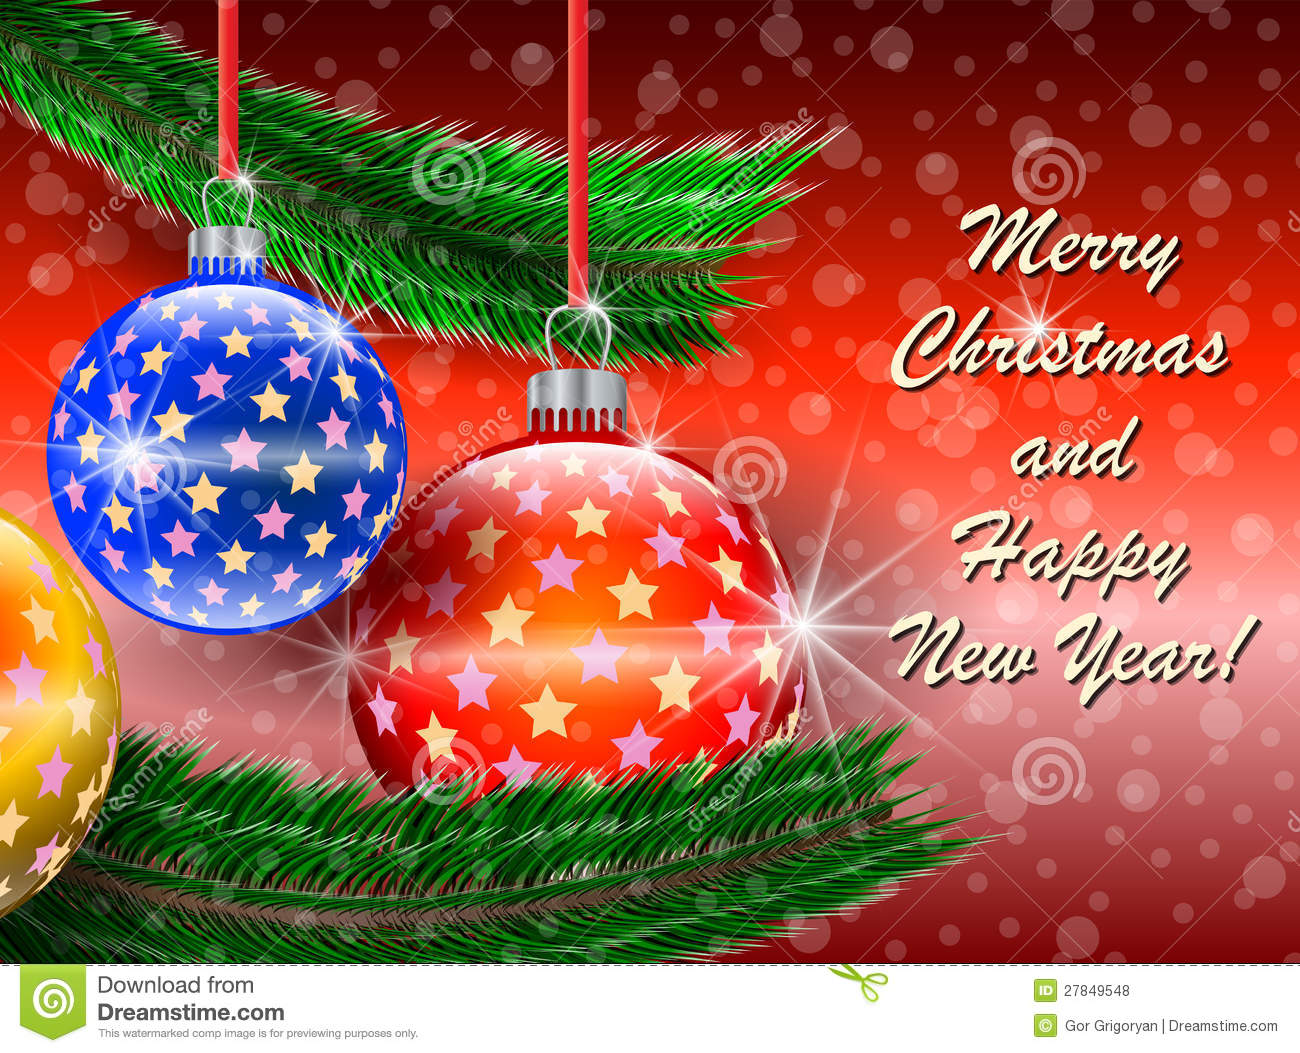 Merry Christmas And Happy New Year Greetings Card Royalty Free ...